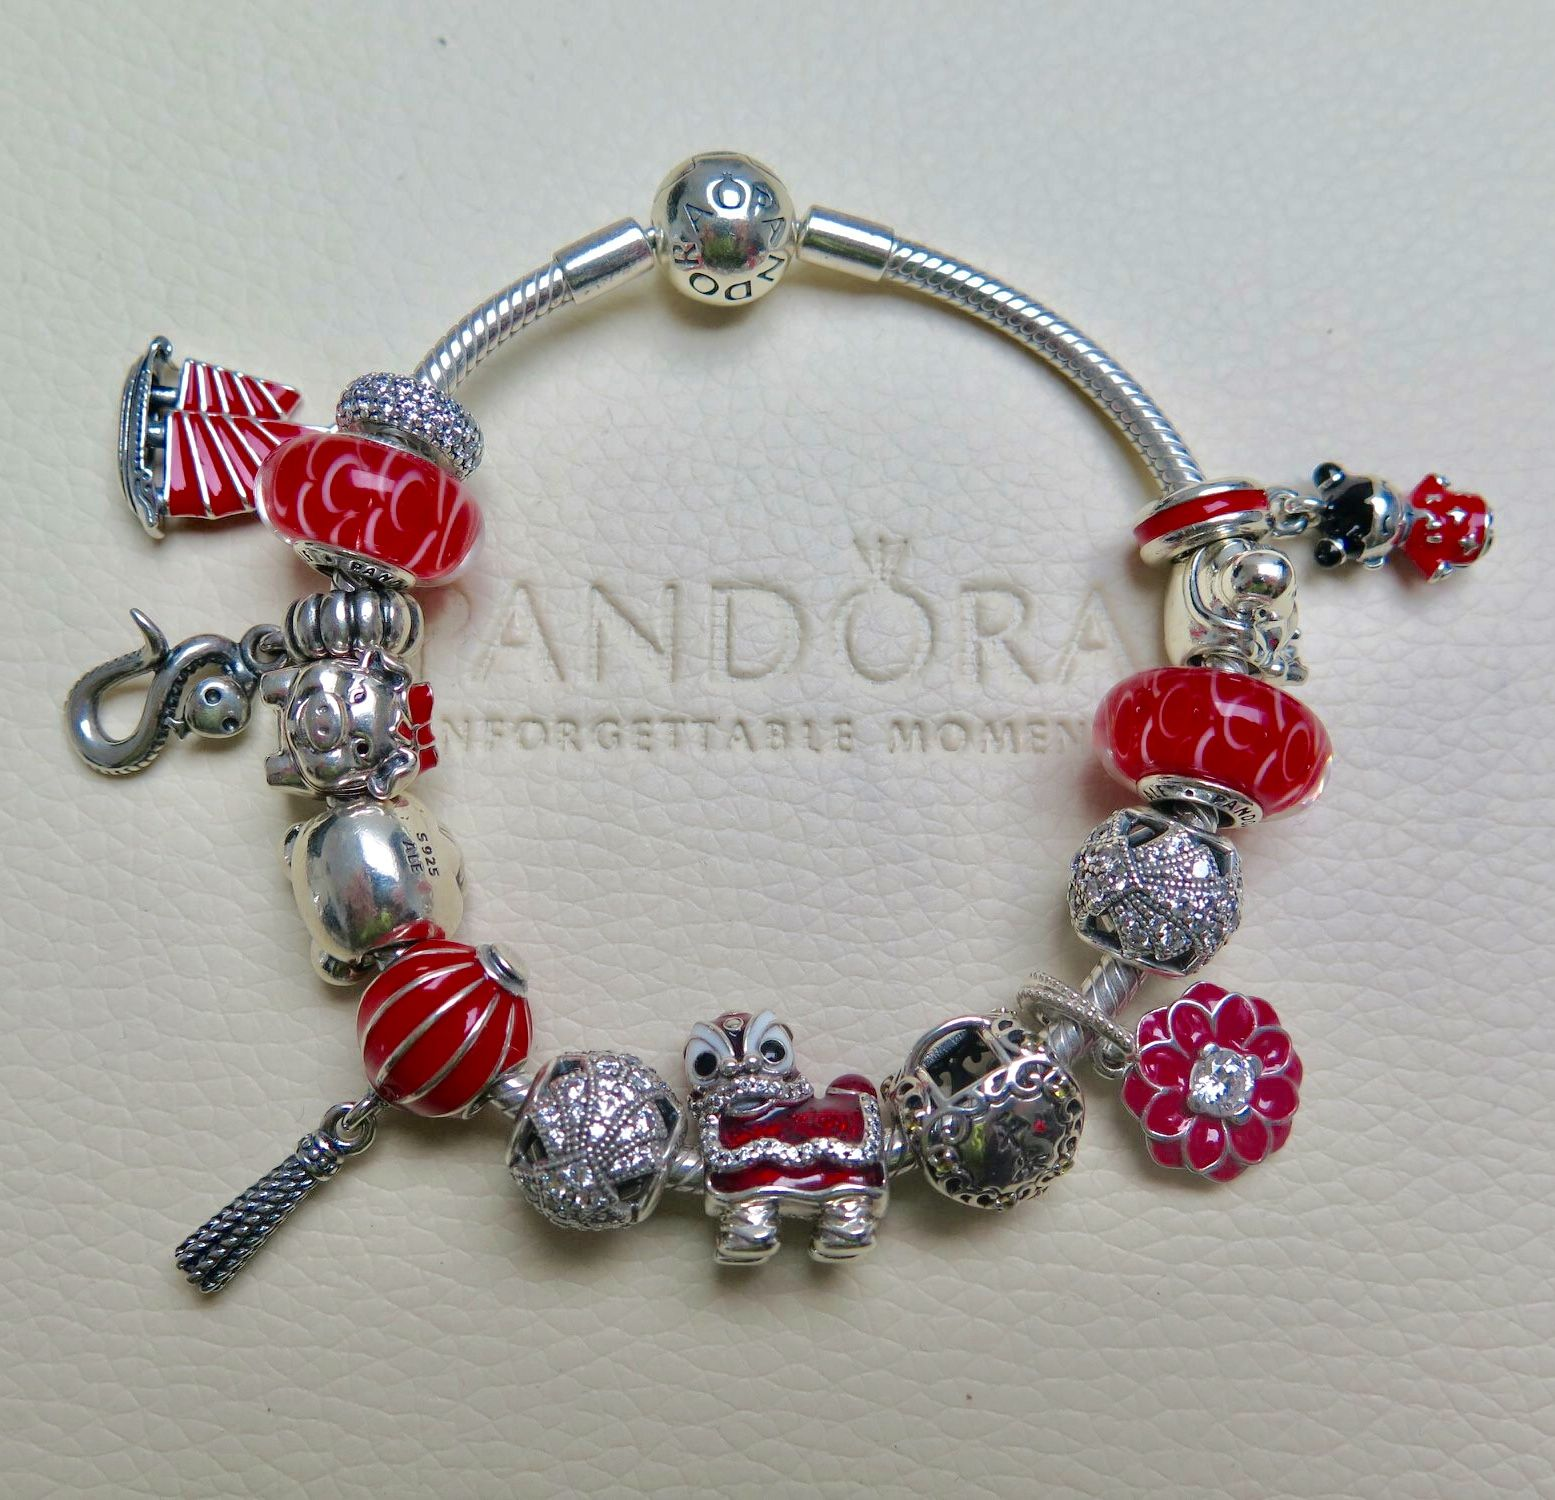 Pin by catherine fischer on pandora asie pinterest bracelets and